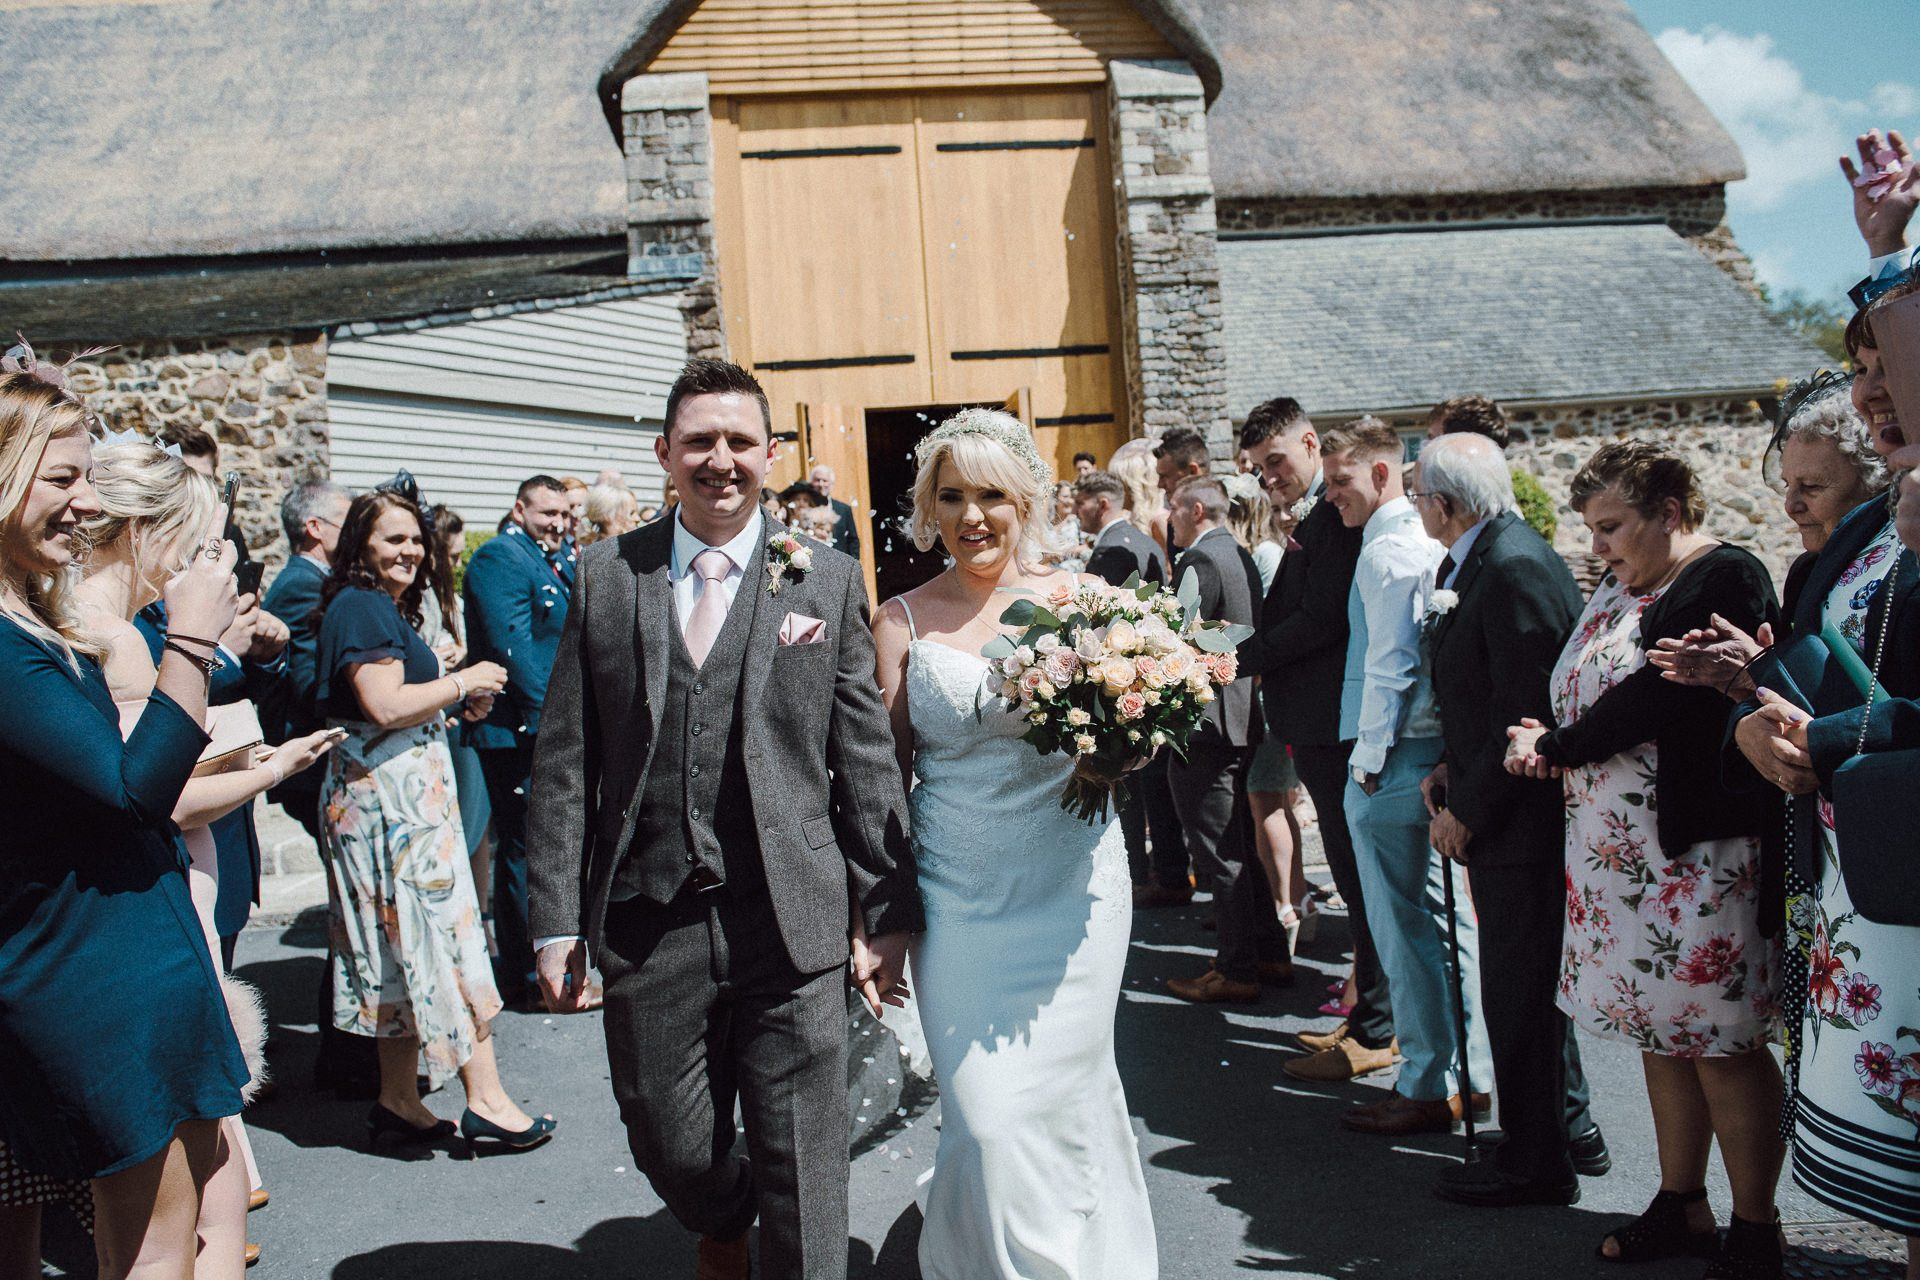 0028-DEVON-SOMERSET-WEDDING-PHOTOGRAPHER-0099-BEST-OF-2019-LOUISE-MAY-DEVON-SOMERSET-WEDDING-PHOTOGRAPHY-LM1_7101